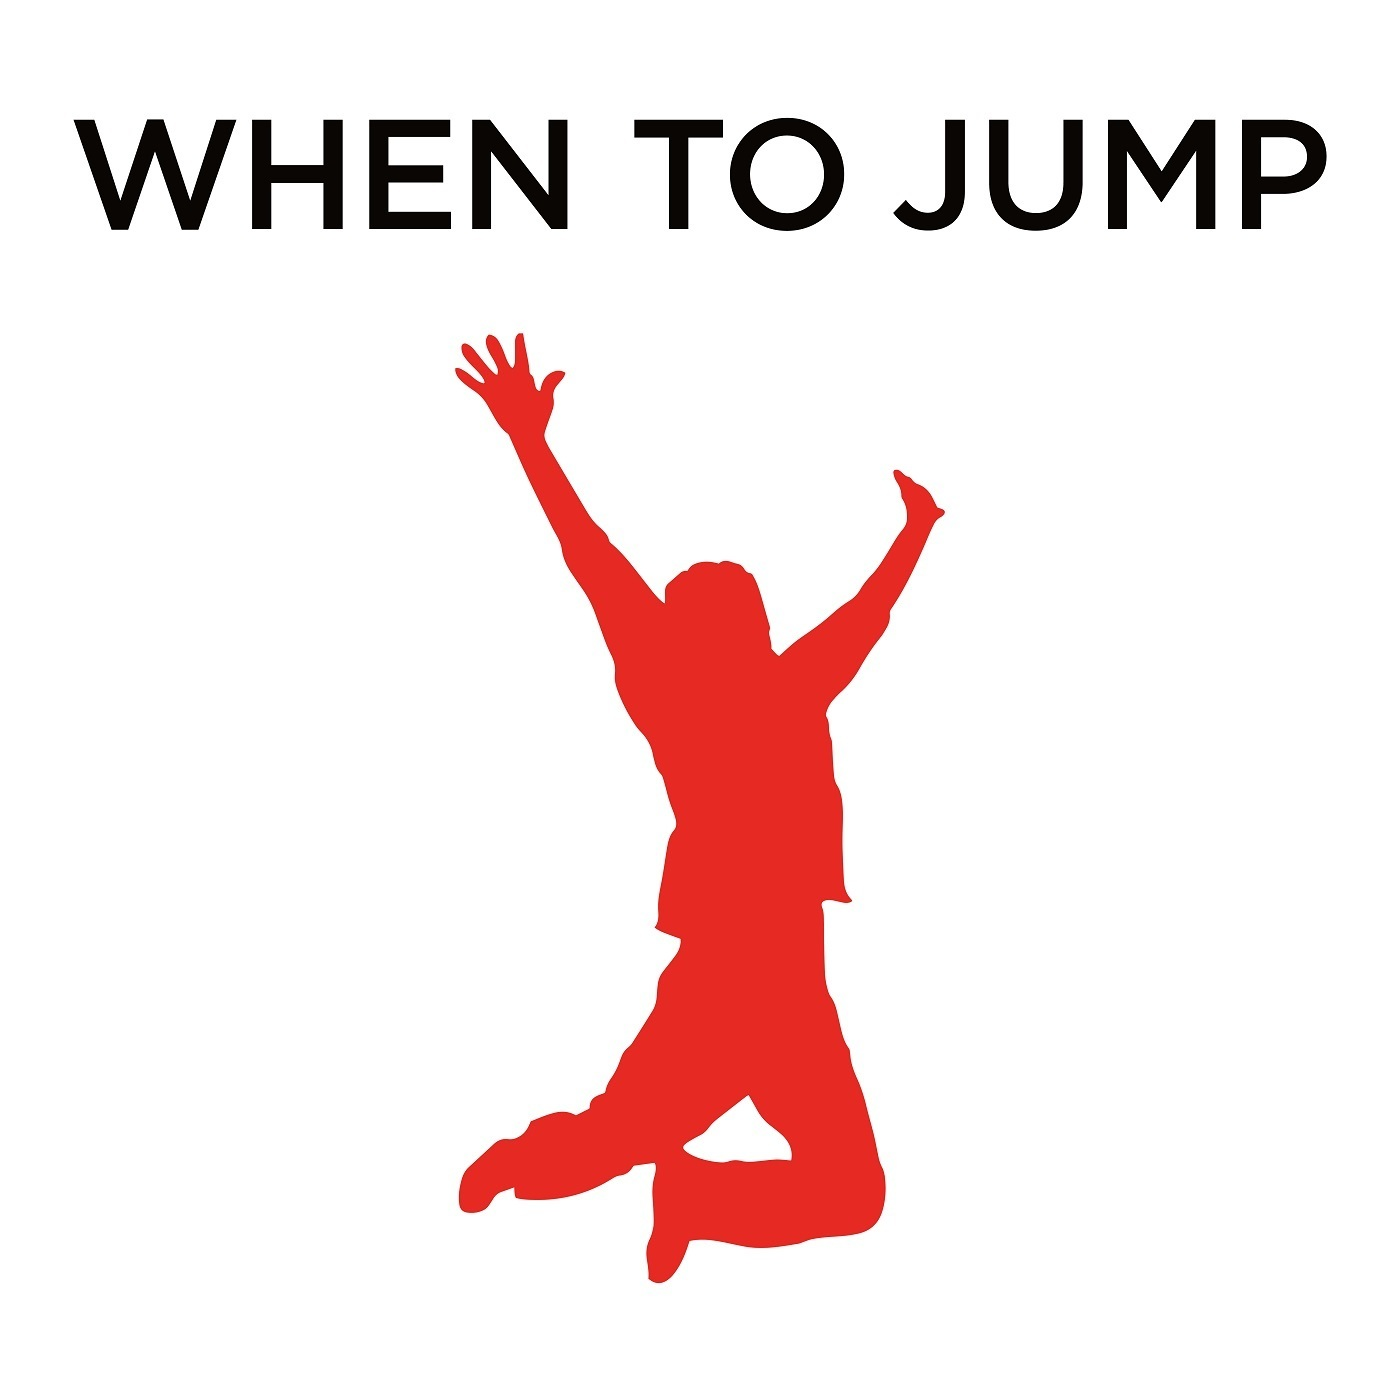 Enthusiasm goes a long way in any jump (feat. Greg Rose)